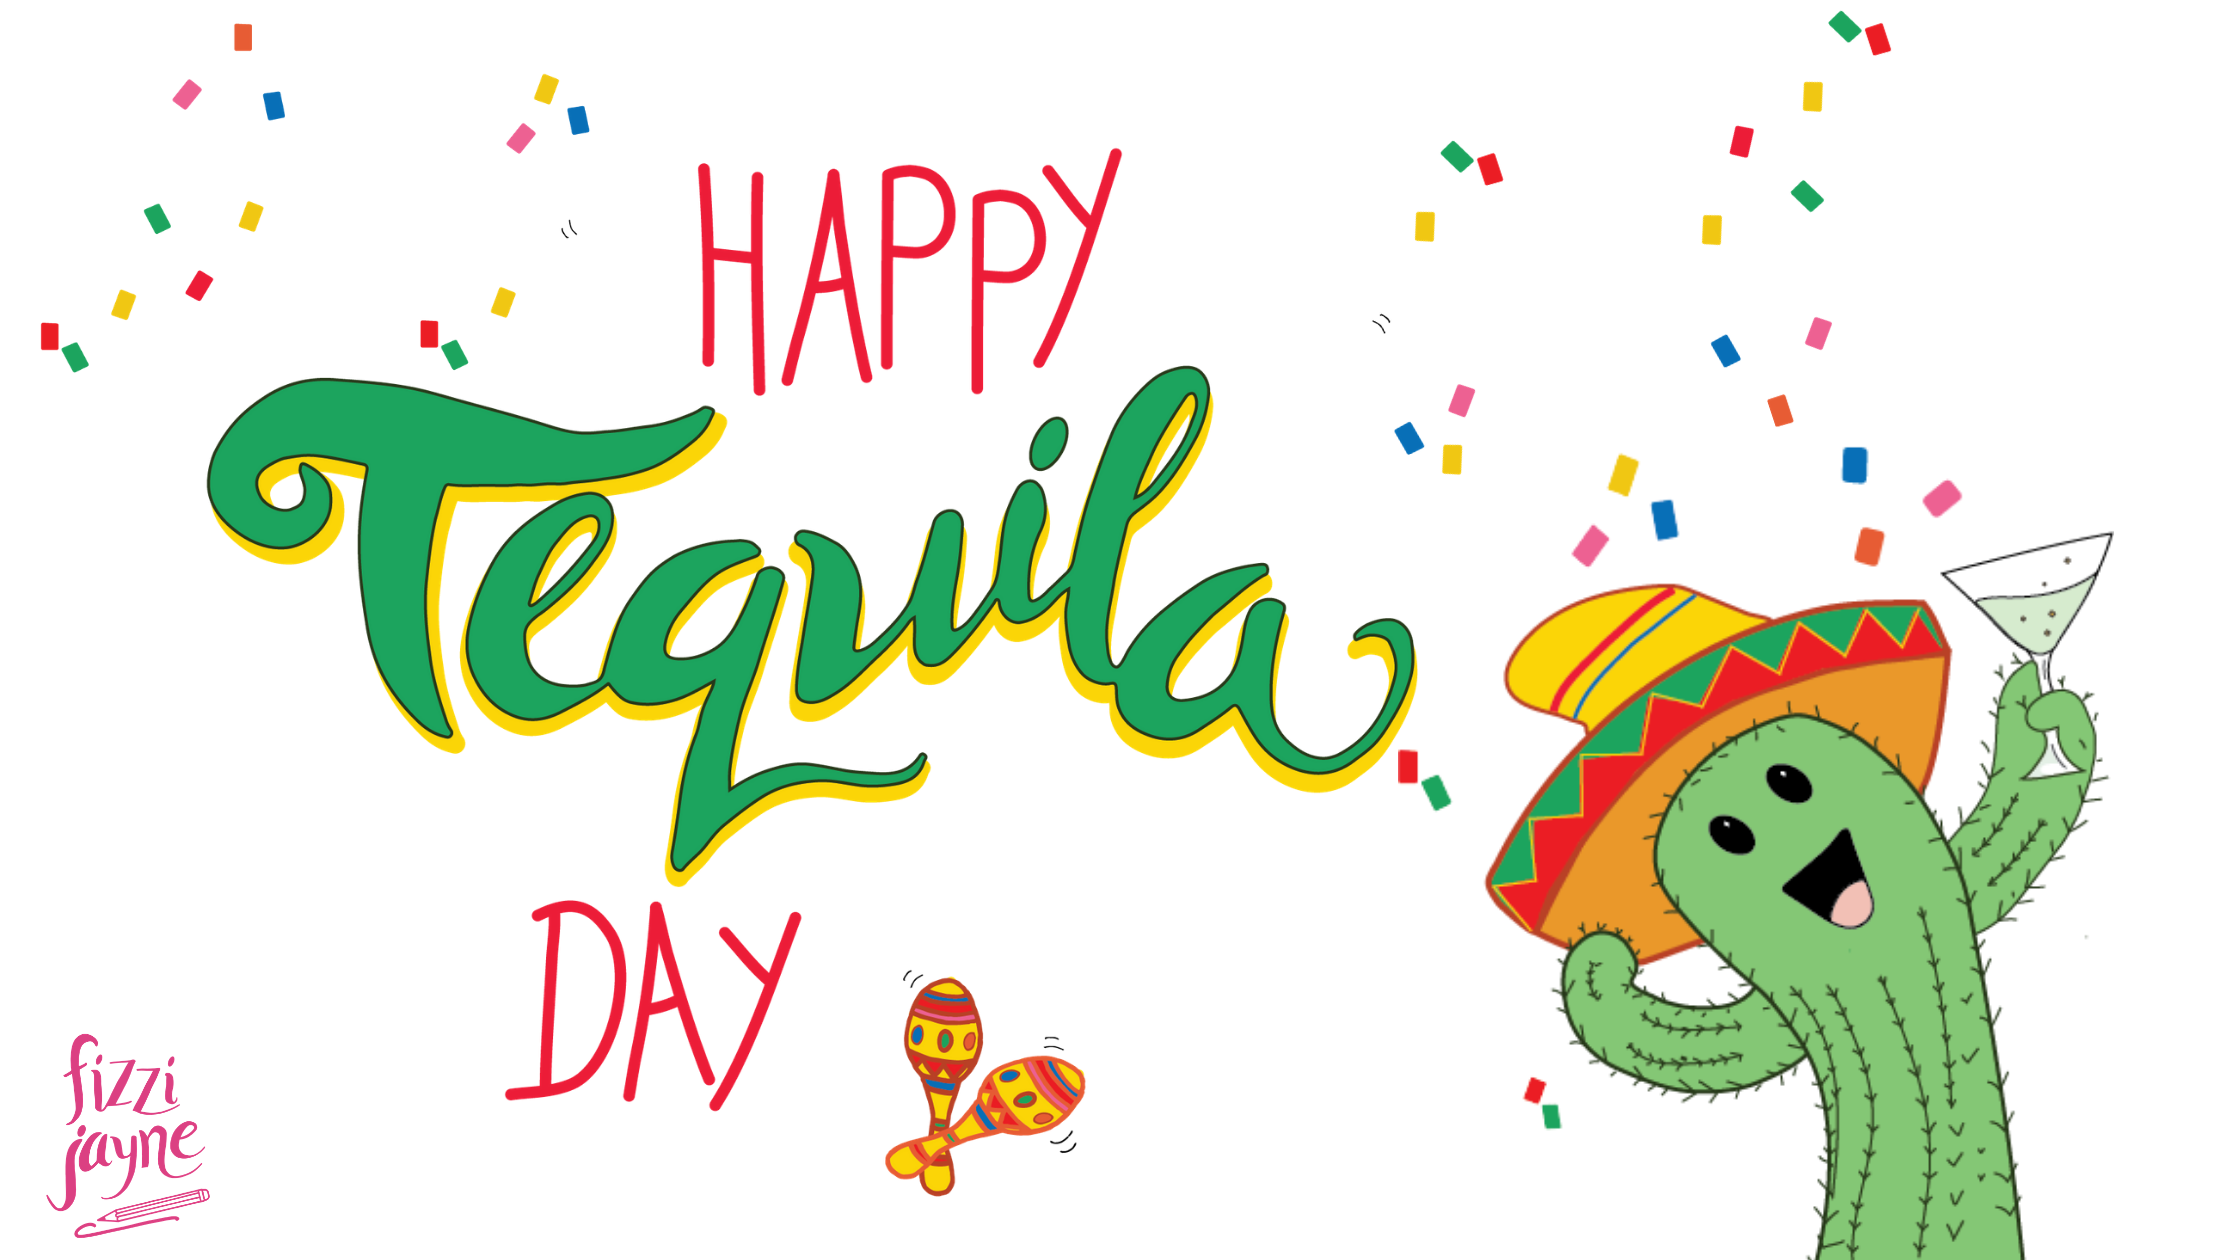 Happy Tequila Day illustration with a cute cartoon cactus